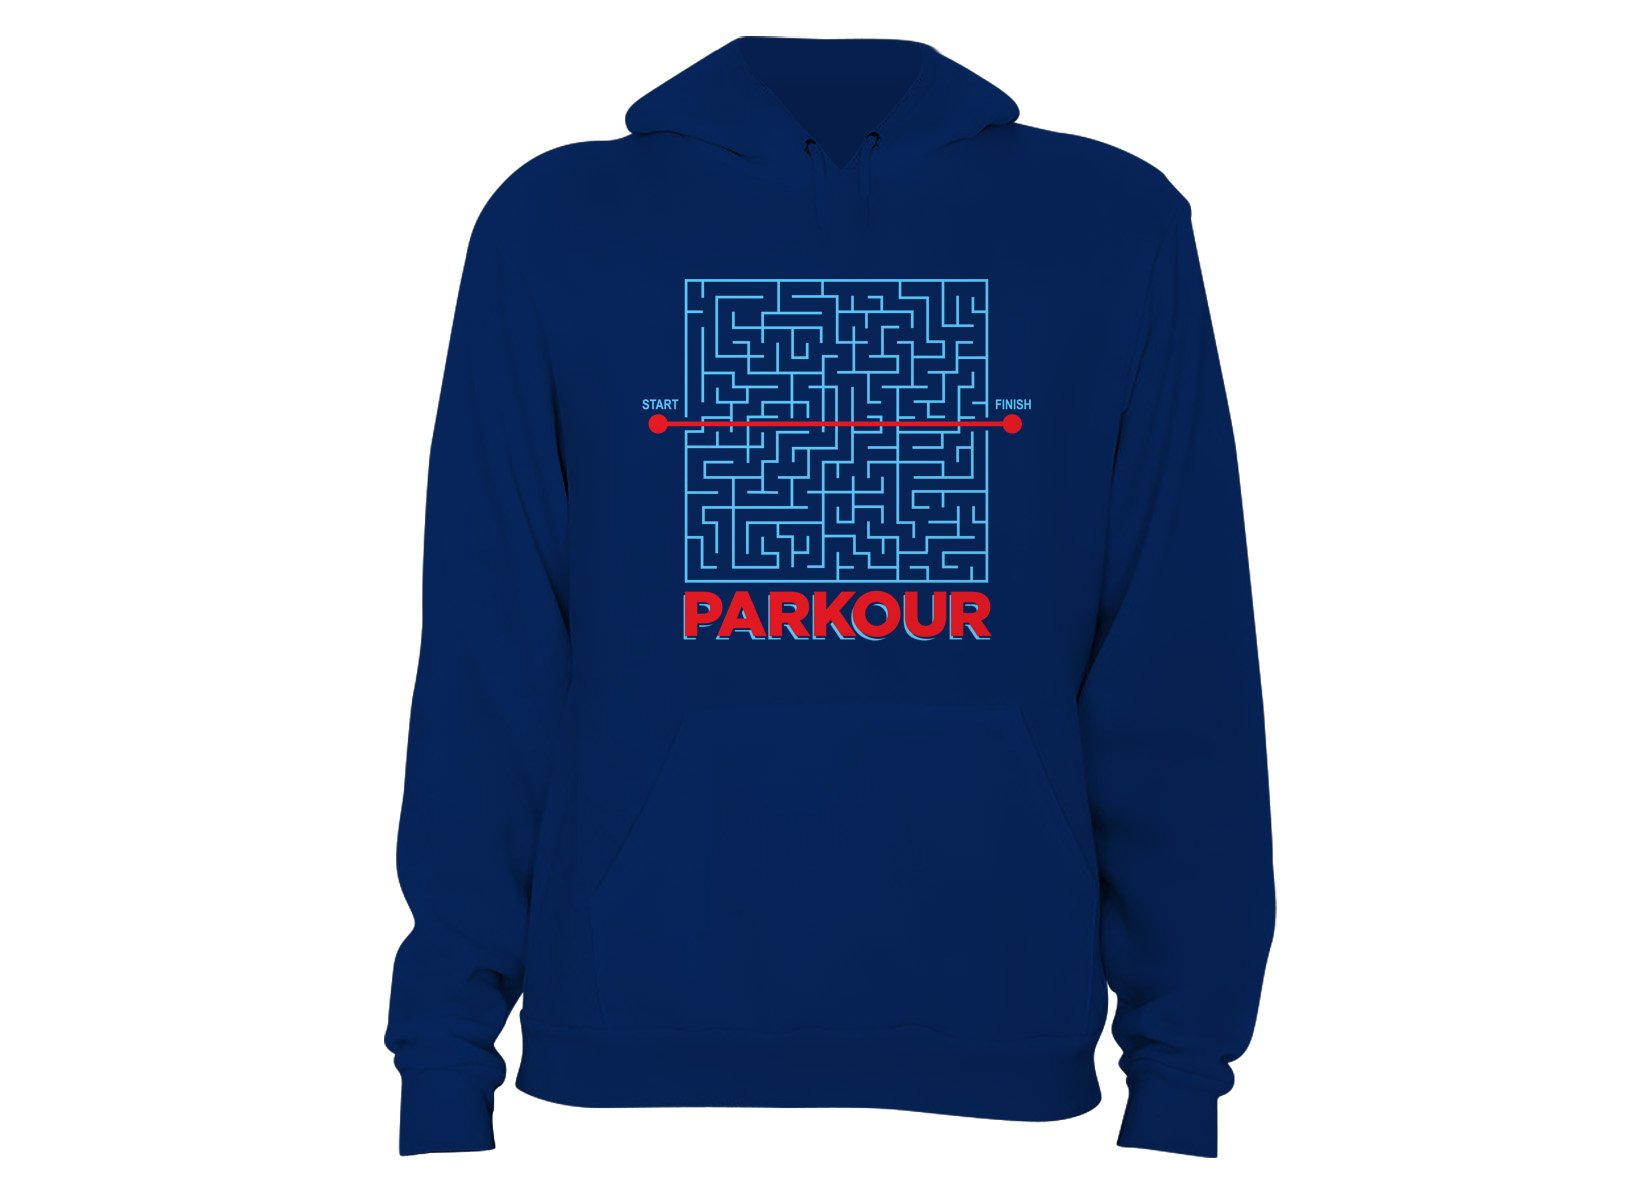 Parkour on Hoodie